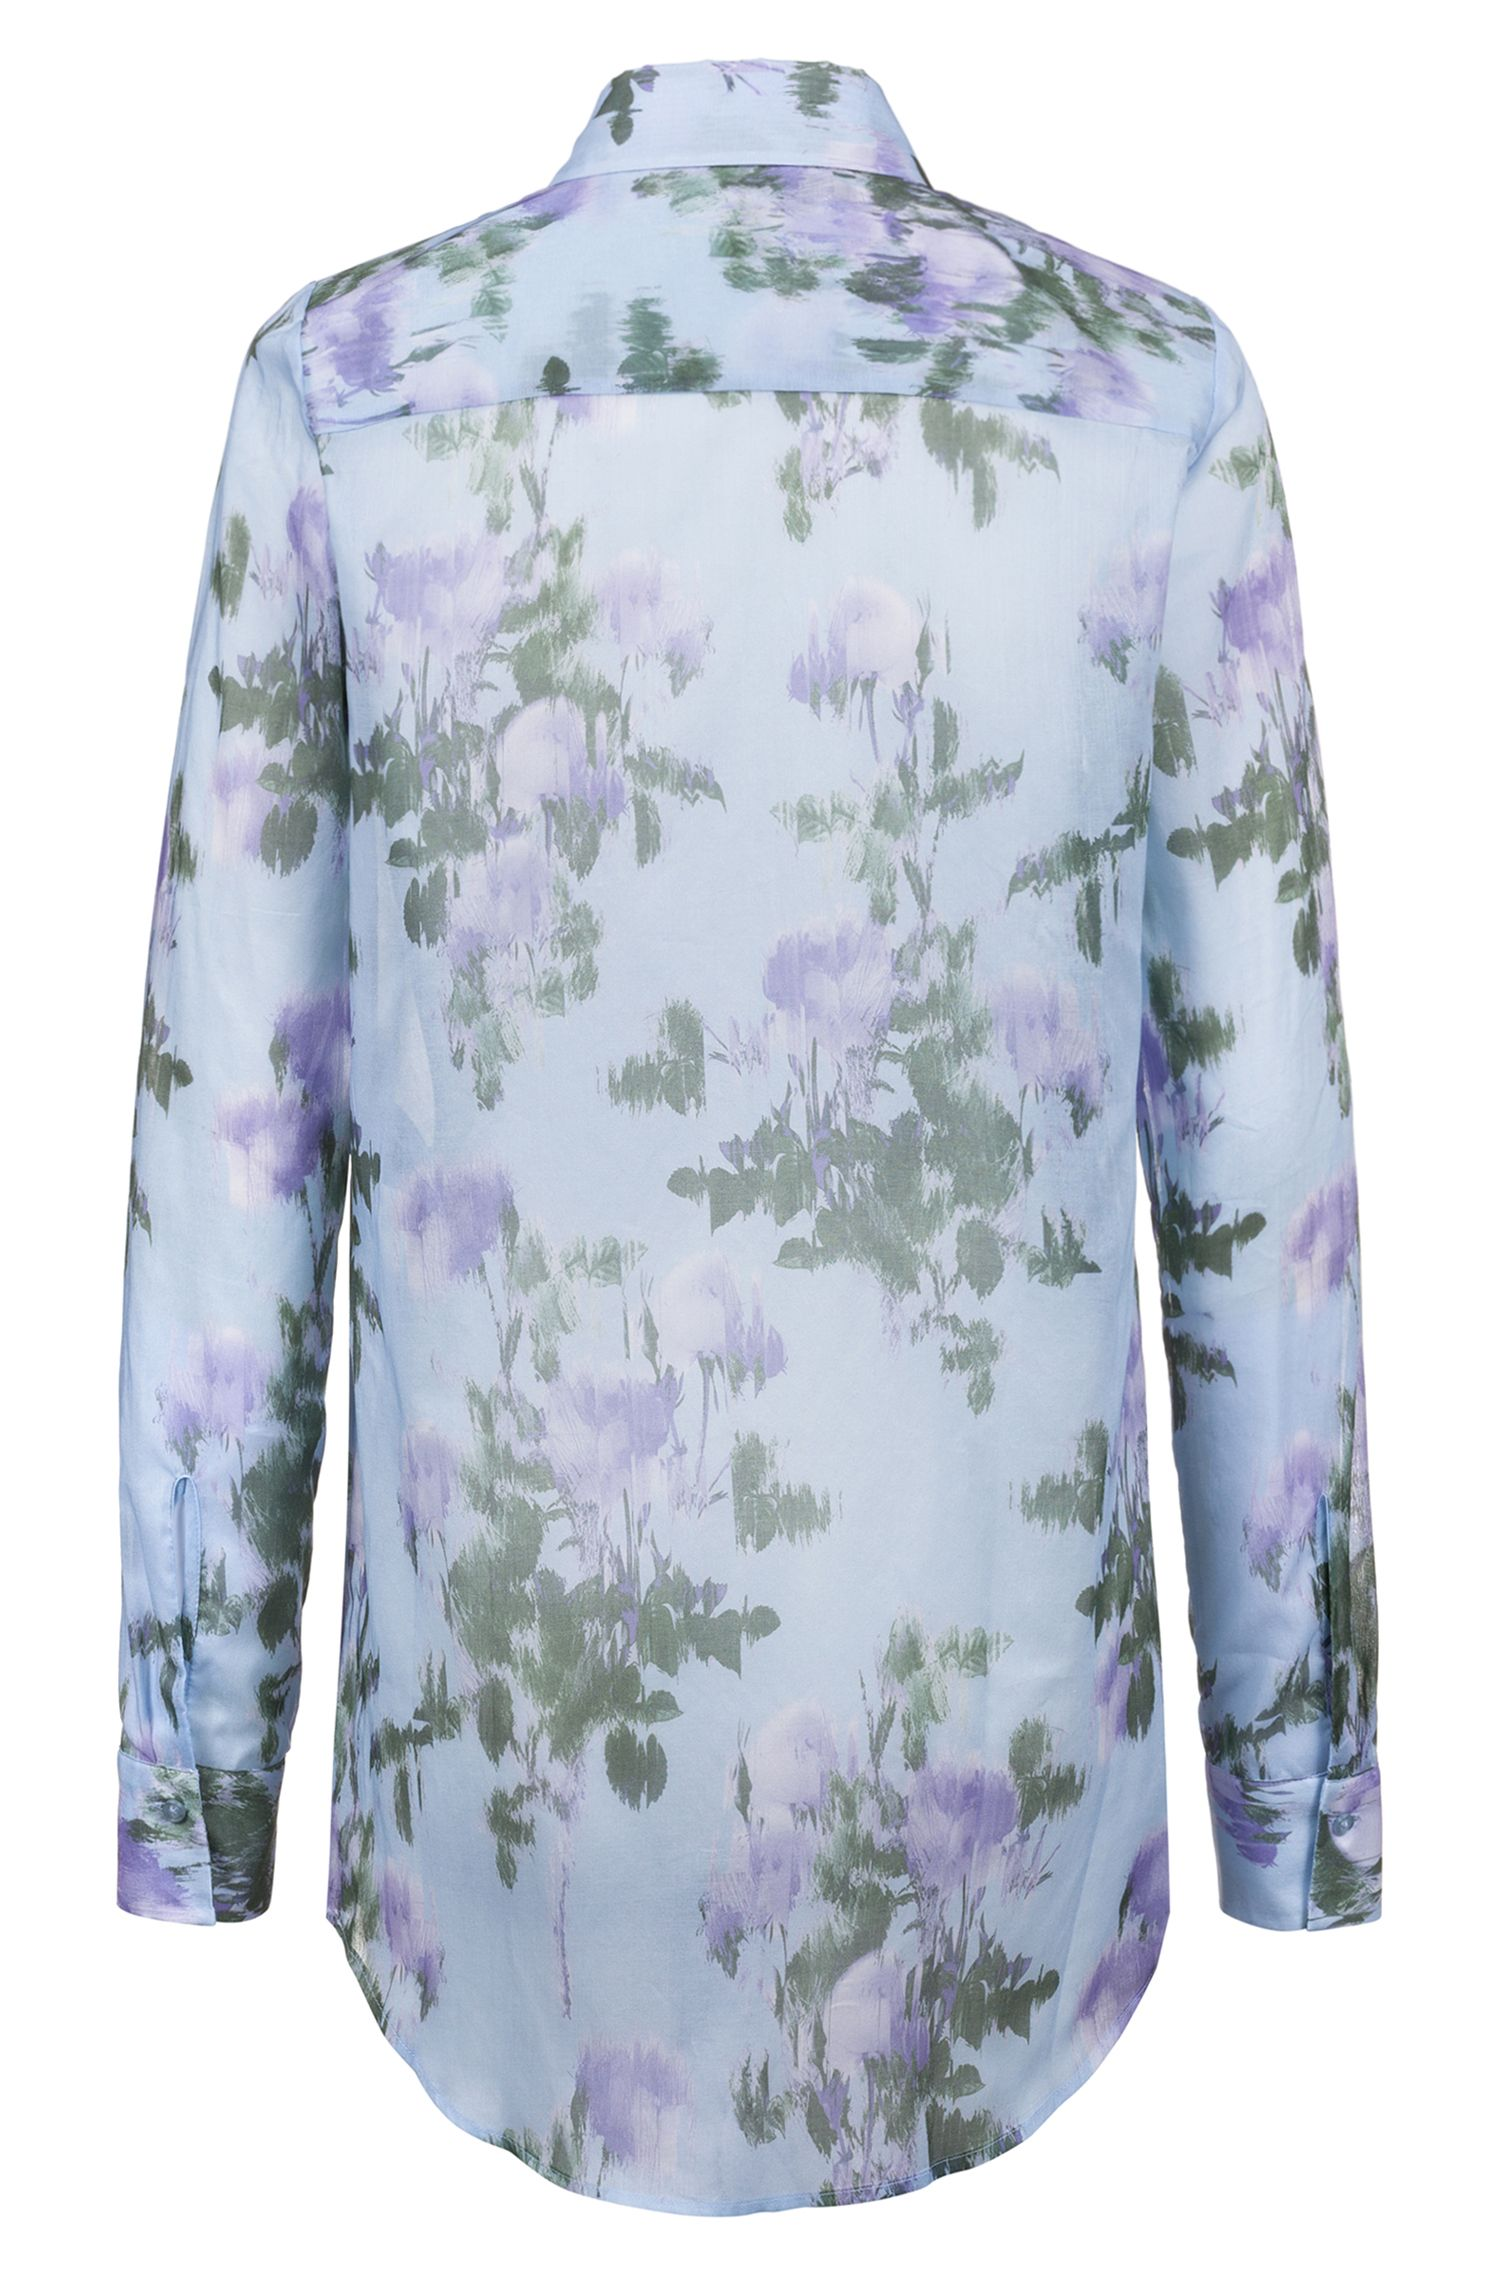 Long-sleeved blouse in cotton voile with floral print, Patterned